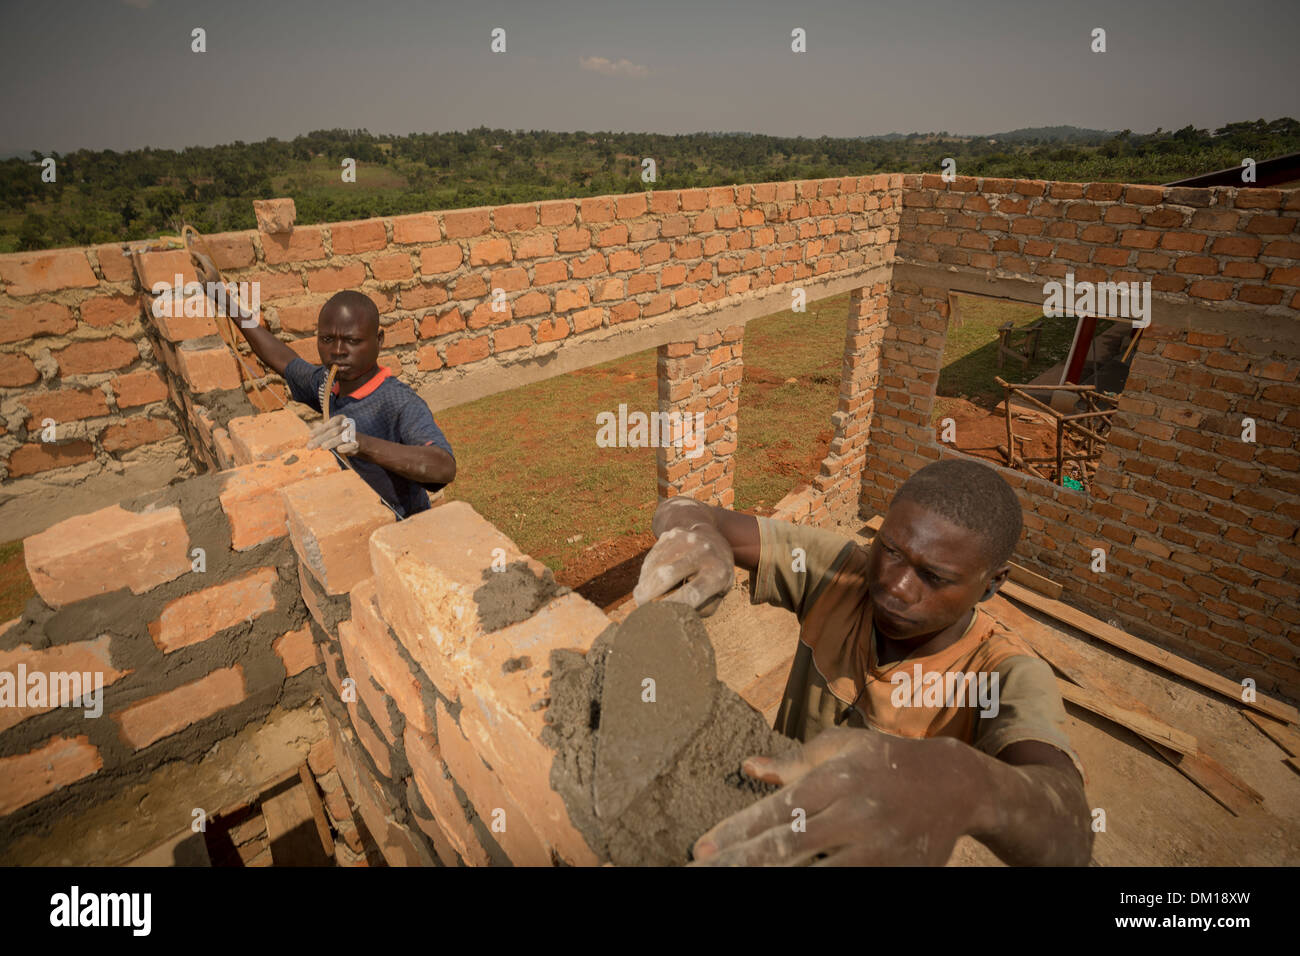 Construction workers build a new warehouse on the outskirts of Kampala, Uganda, East Africa. Stock Photo